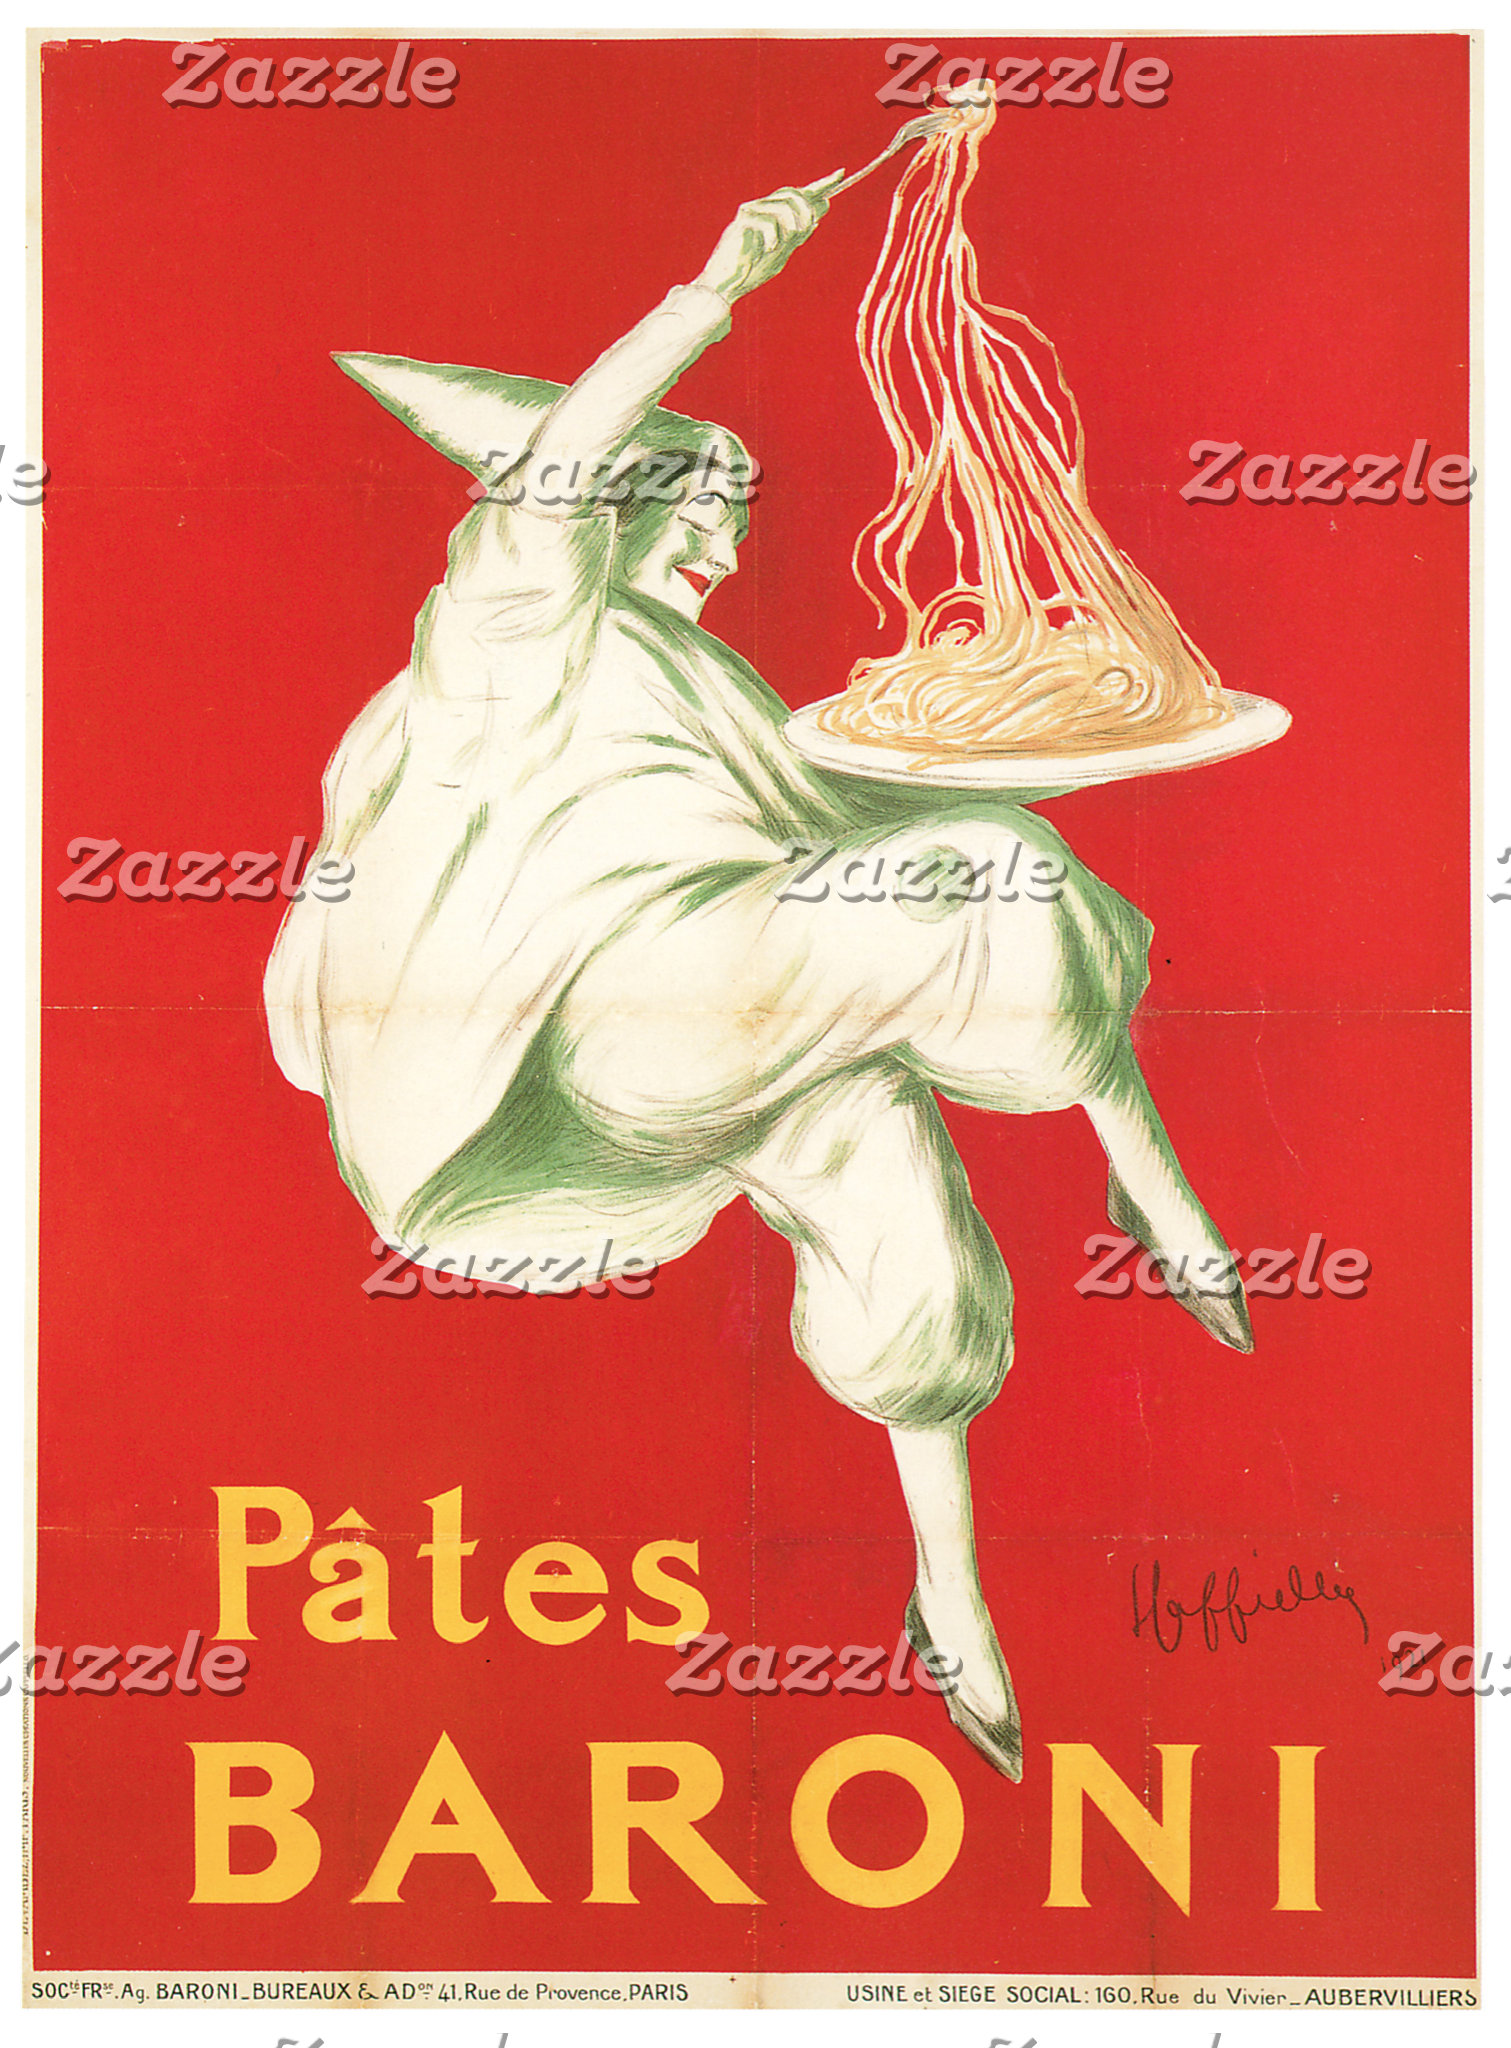 Vintage Food and Drink Ads